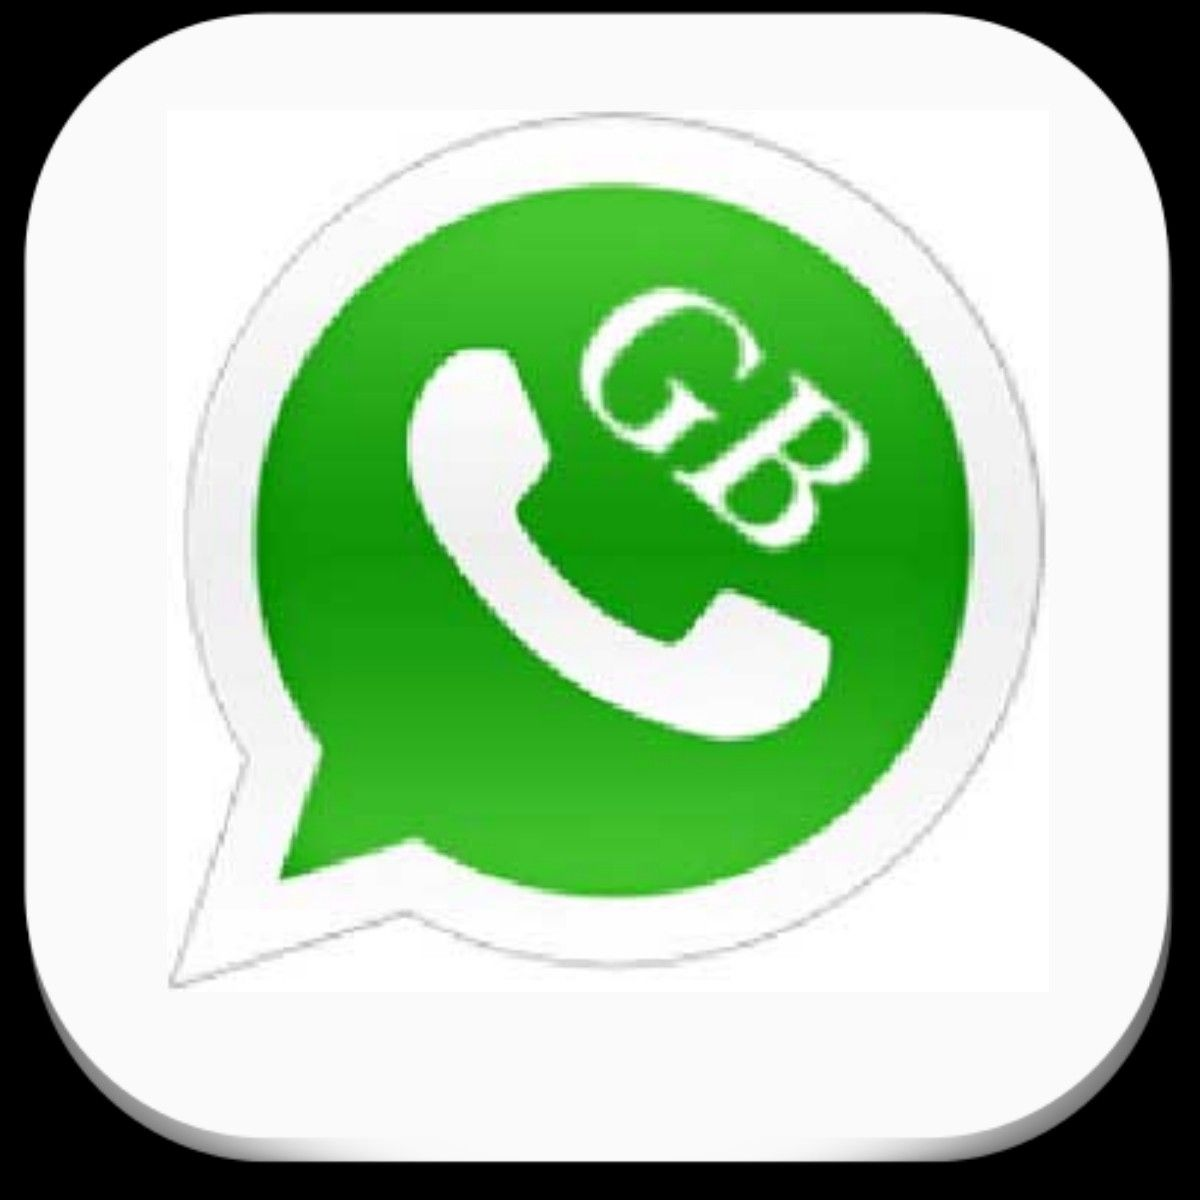 New Version of GB Whatsapp 6.89 is now available for